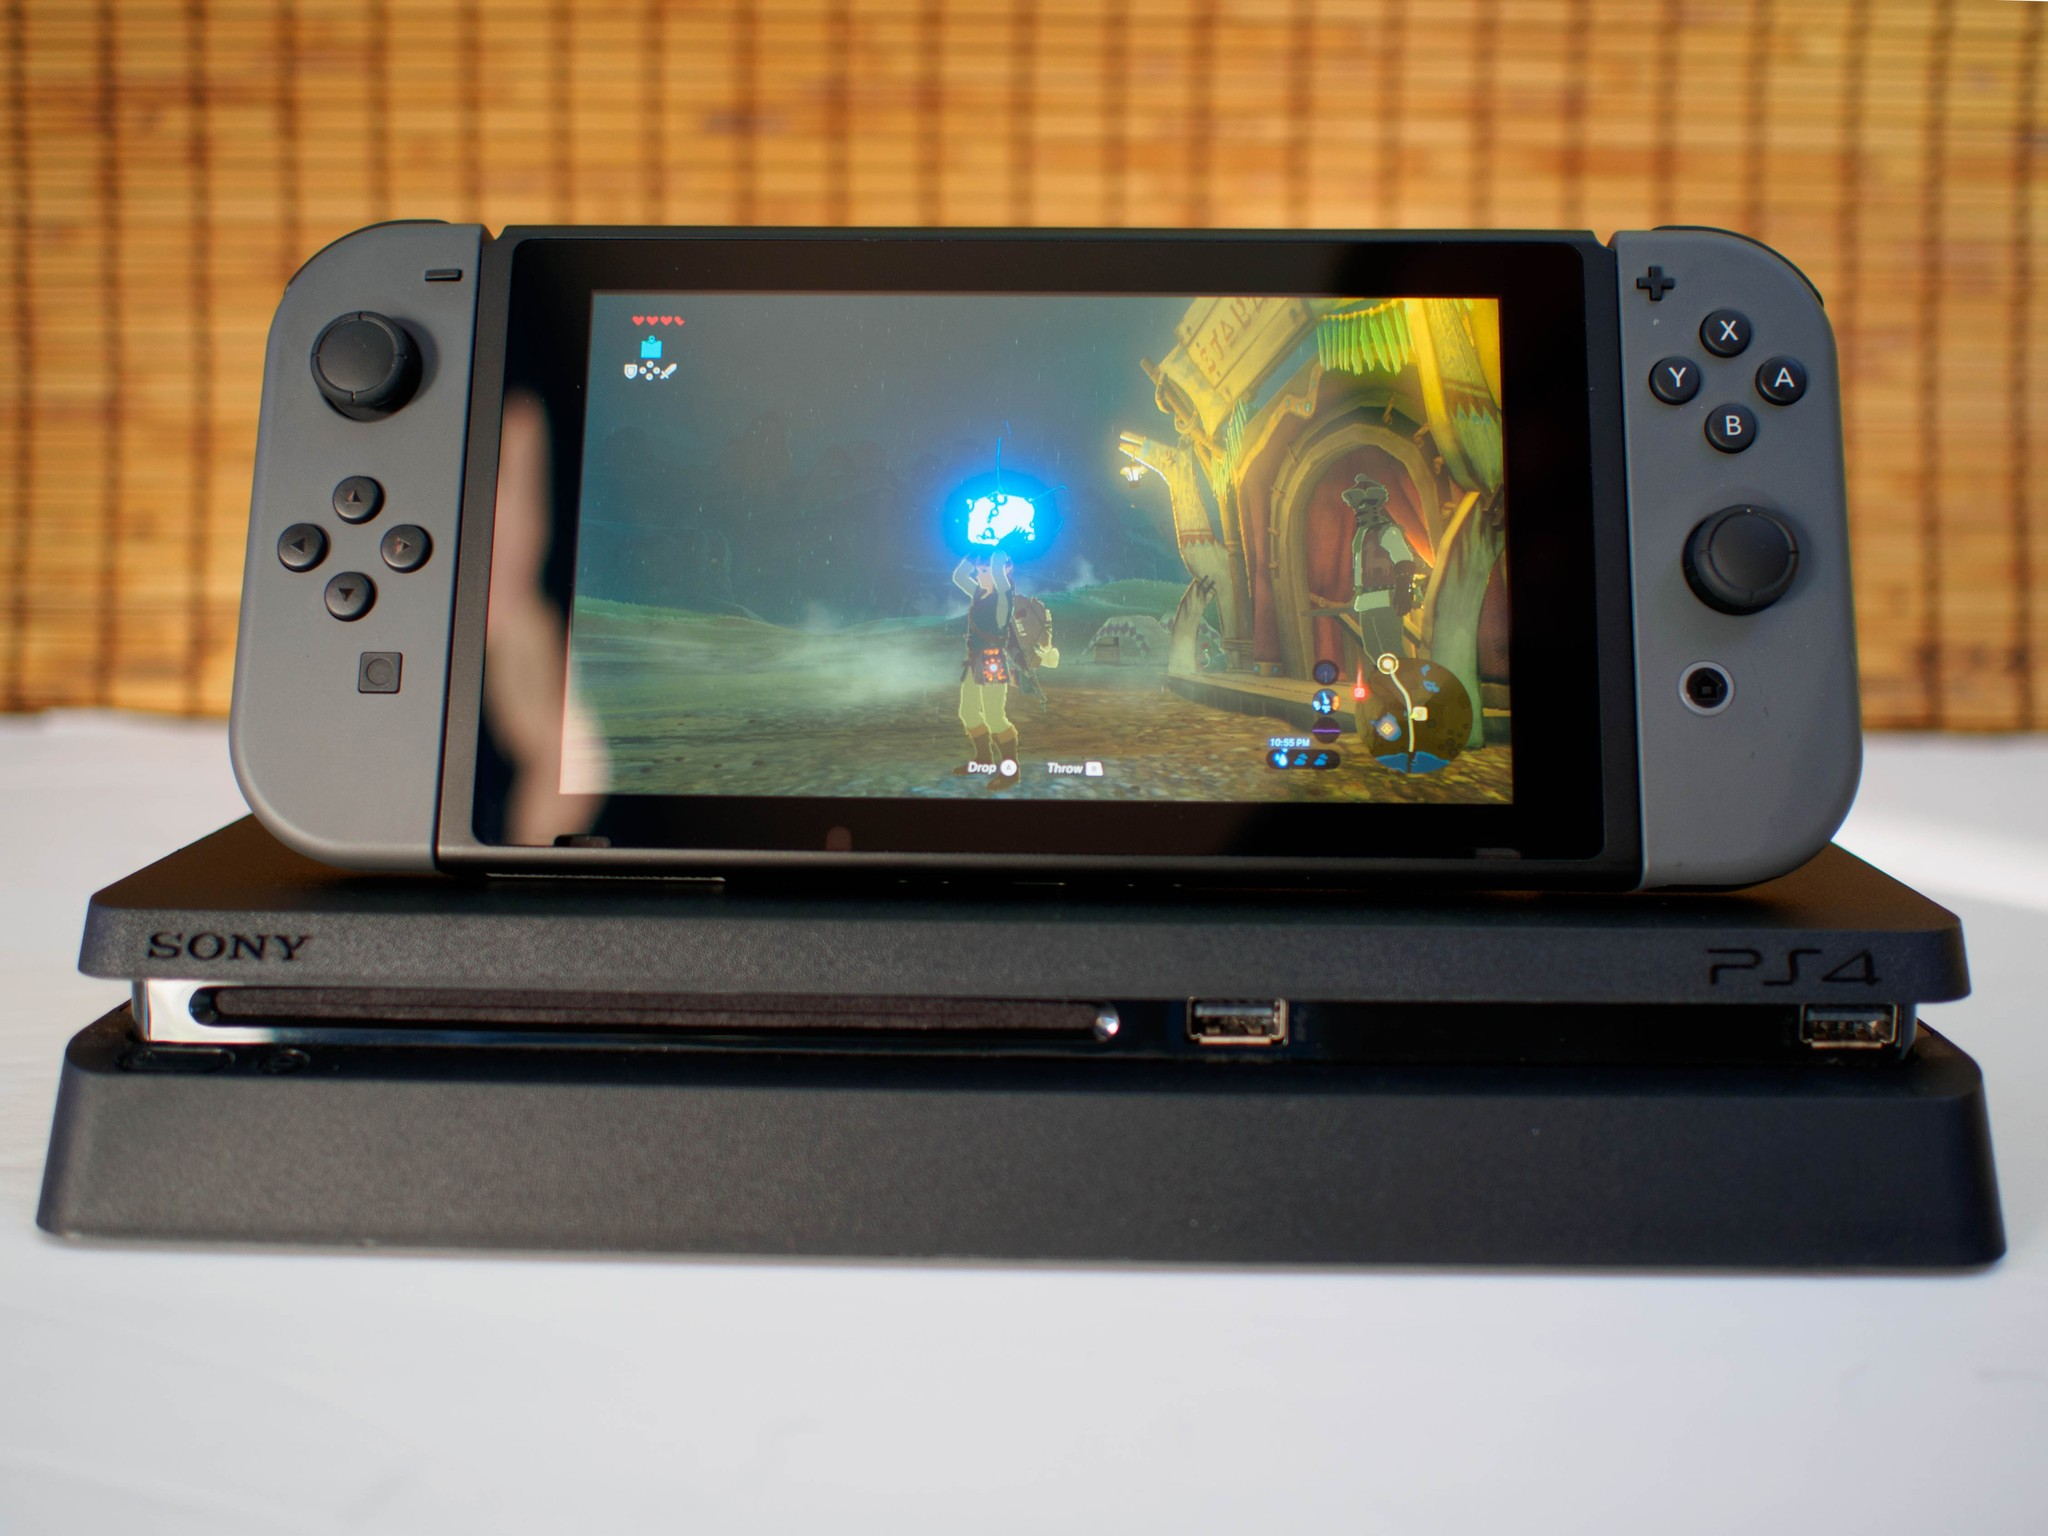 Nintendo Switch Vs Playstation 4 Which Should You Buy